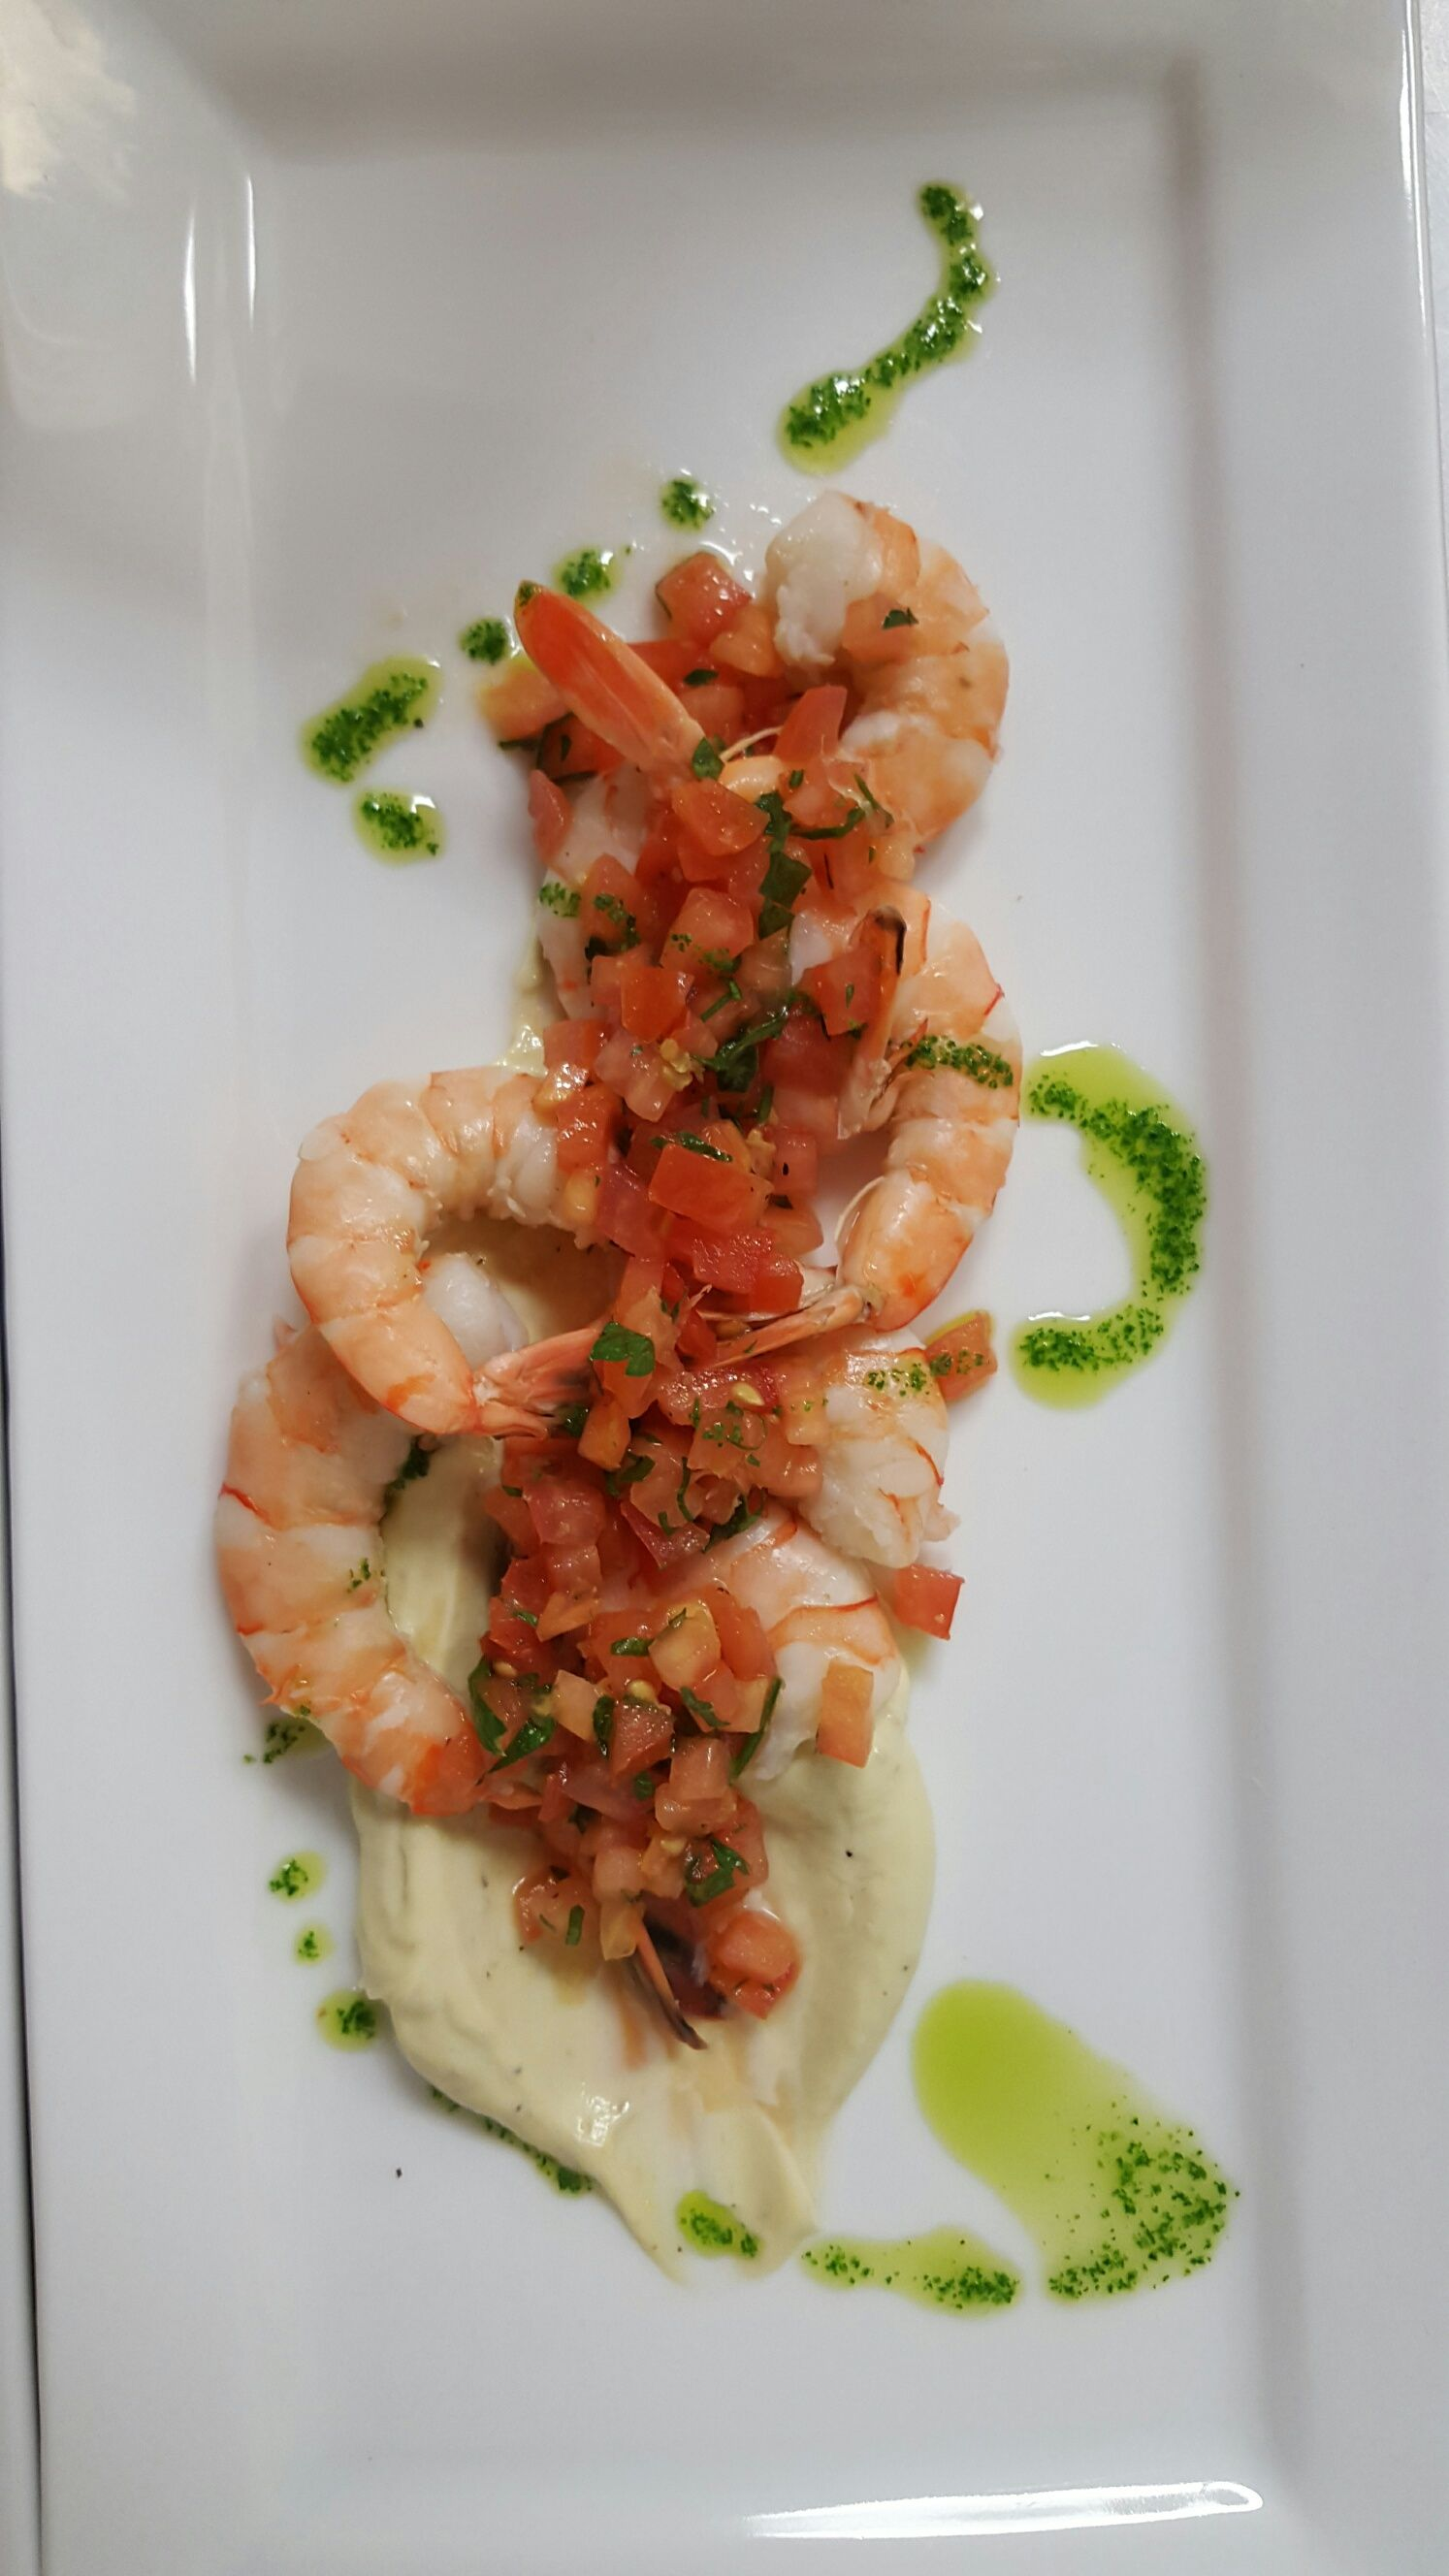 Our Poached Shrimp with Avocado Aoili is the perfect appetizer to start your evening! Available at Black Sheep in Rochester, NY. www.rocblacksheep.com